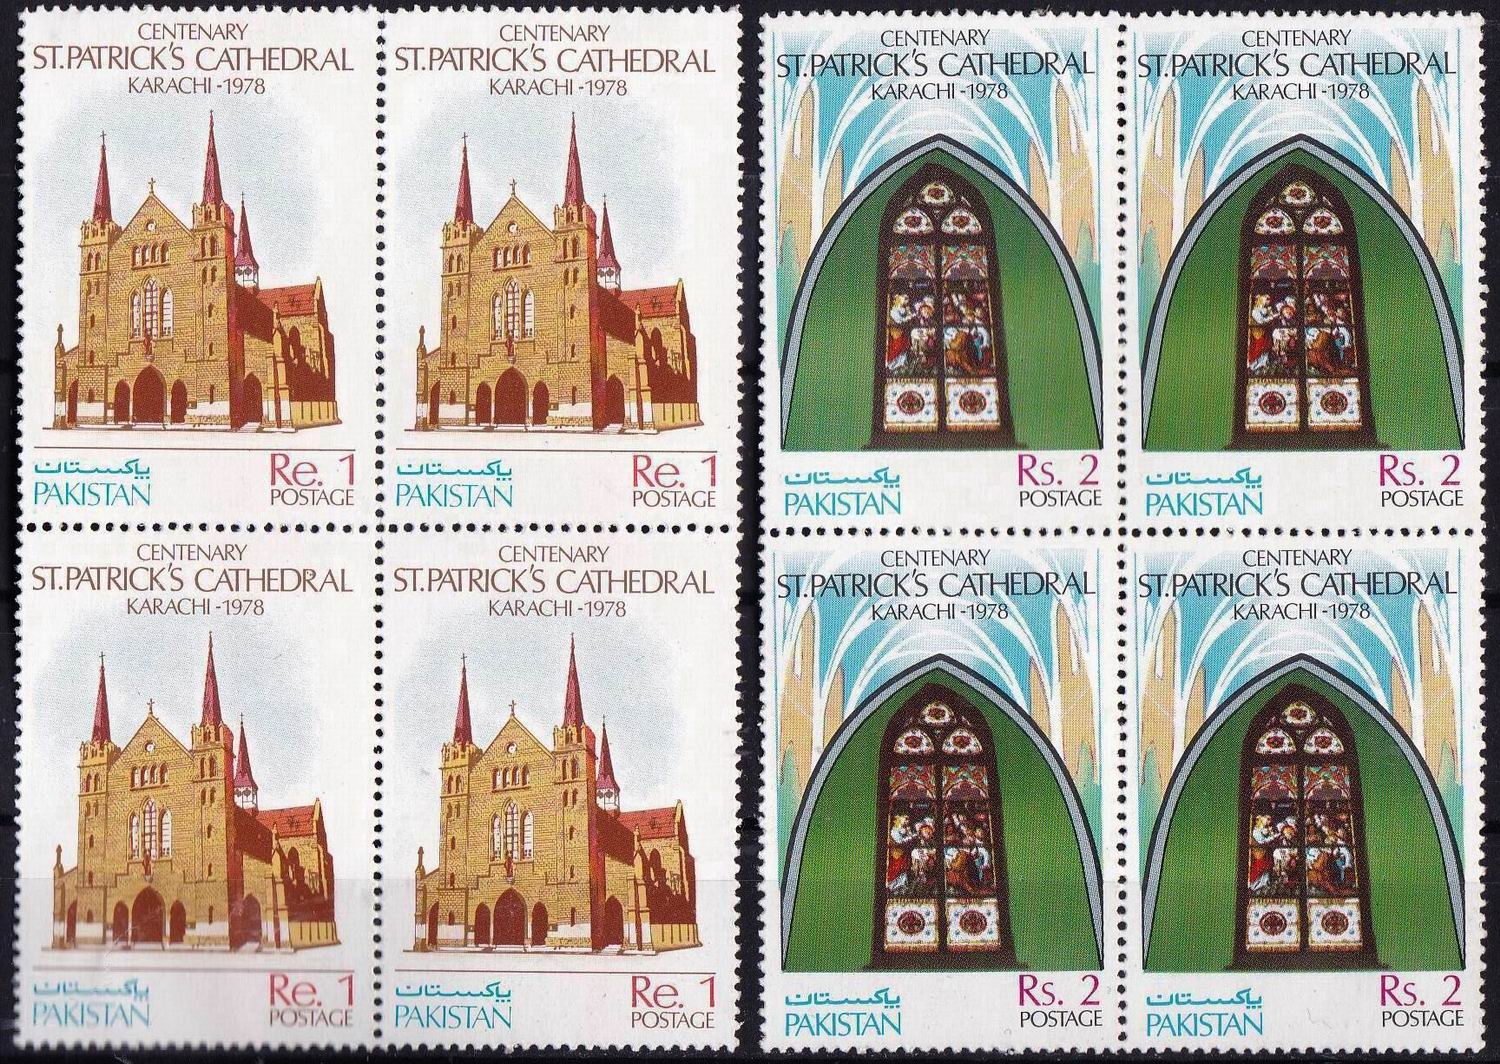 Pakistan Stamps 1978 St.Patrick's Cathedral Karachi